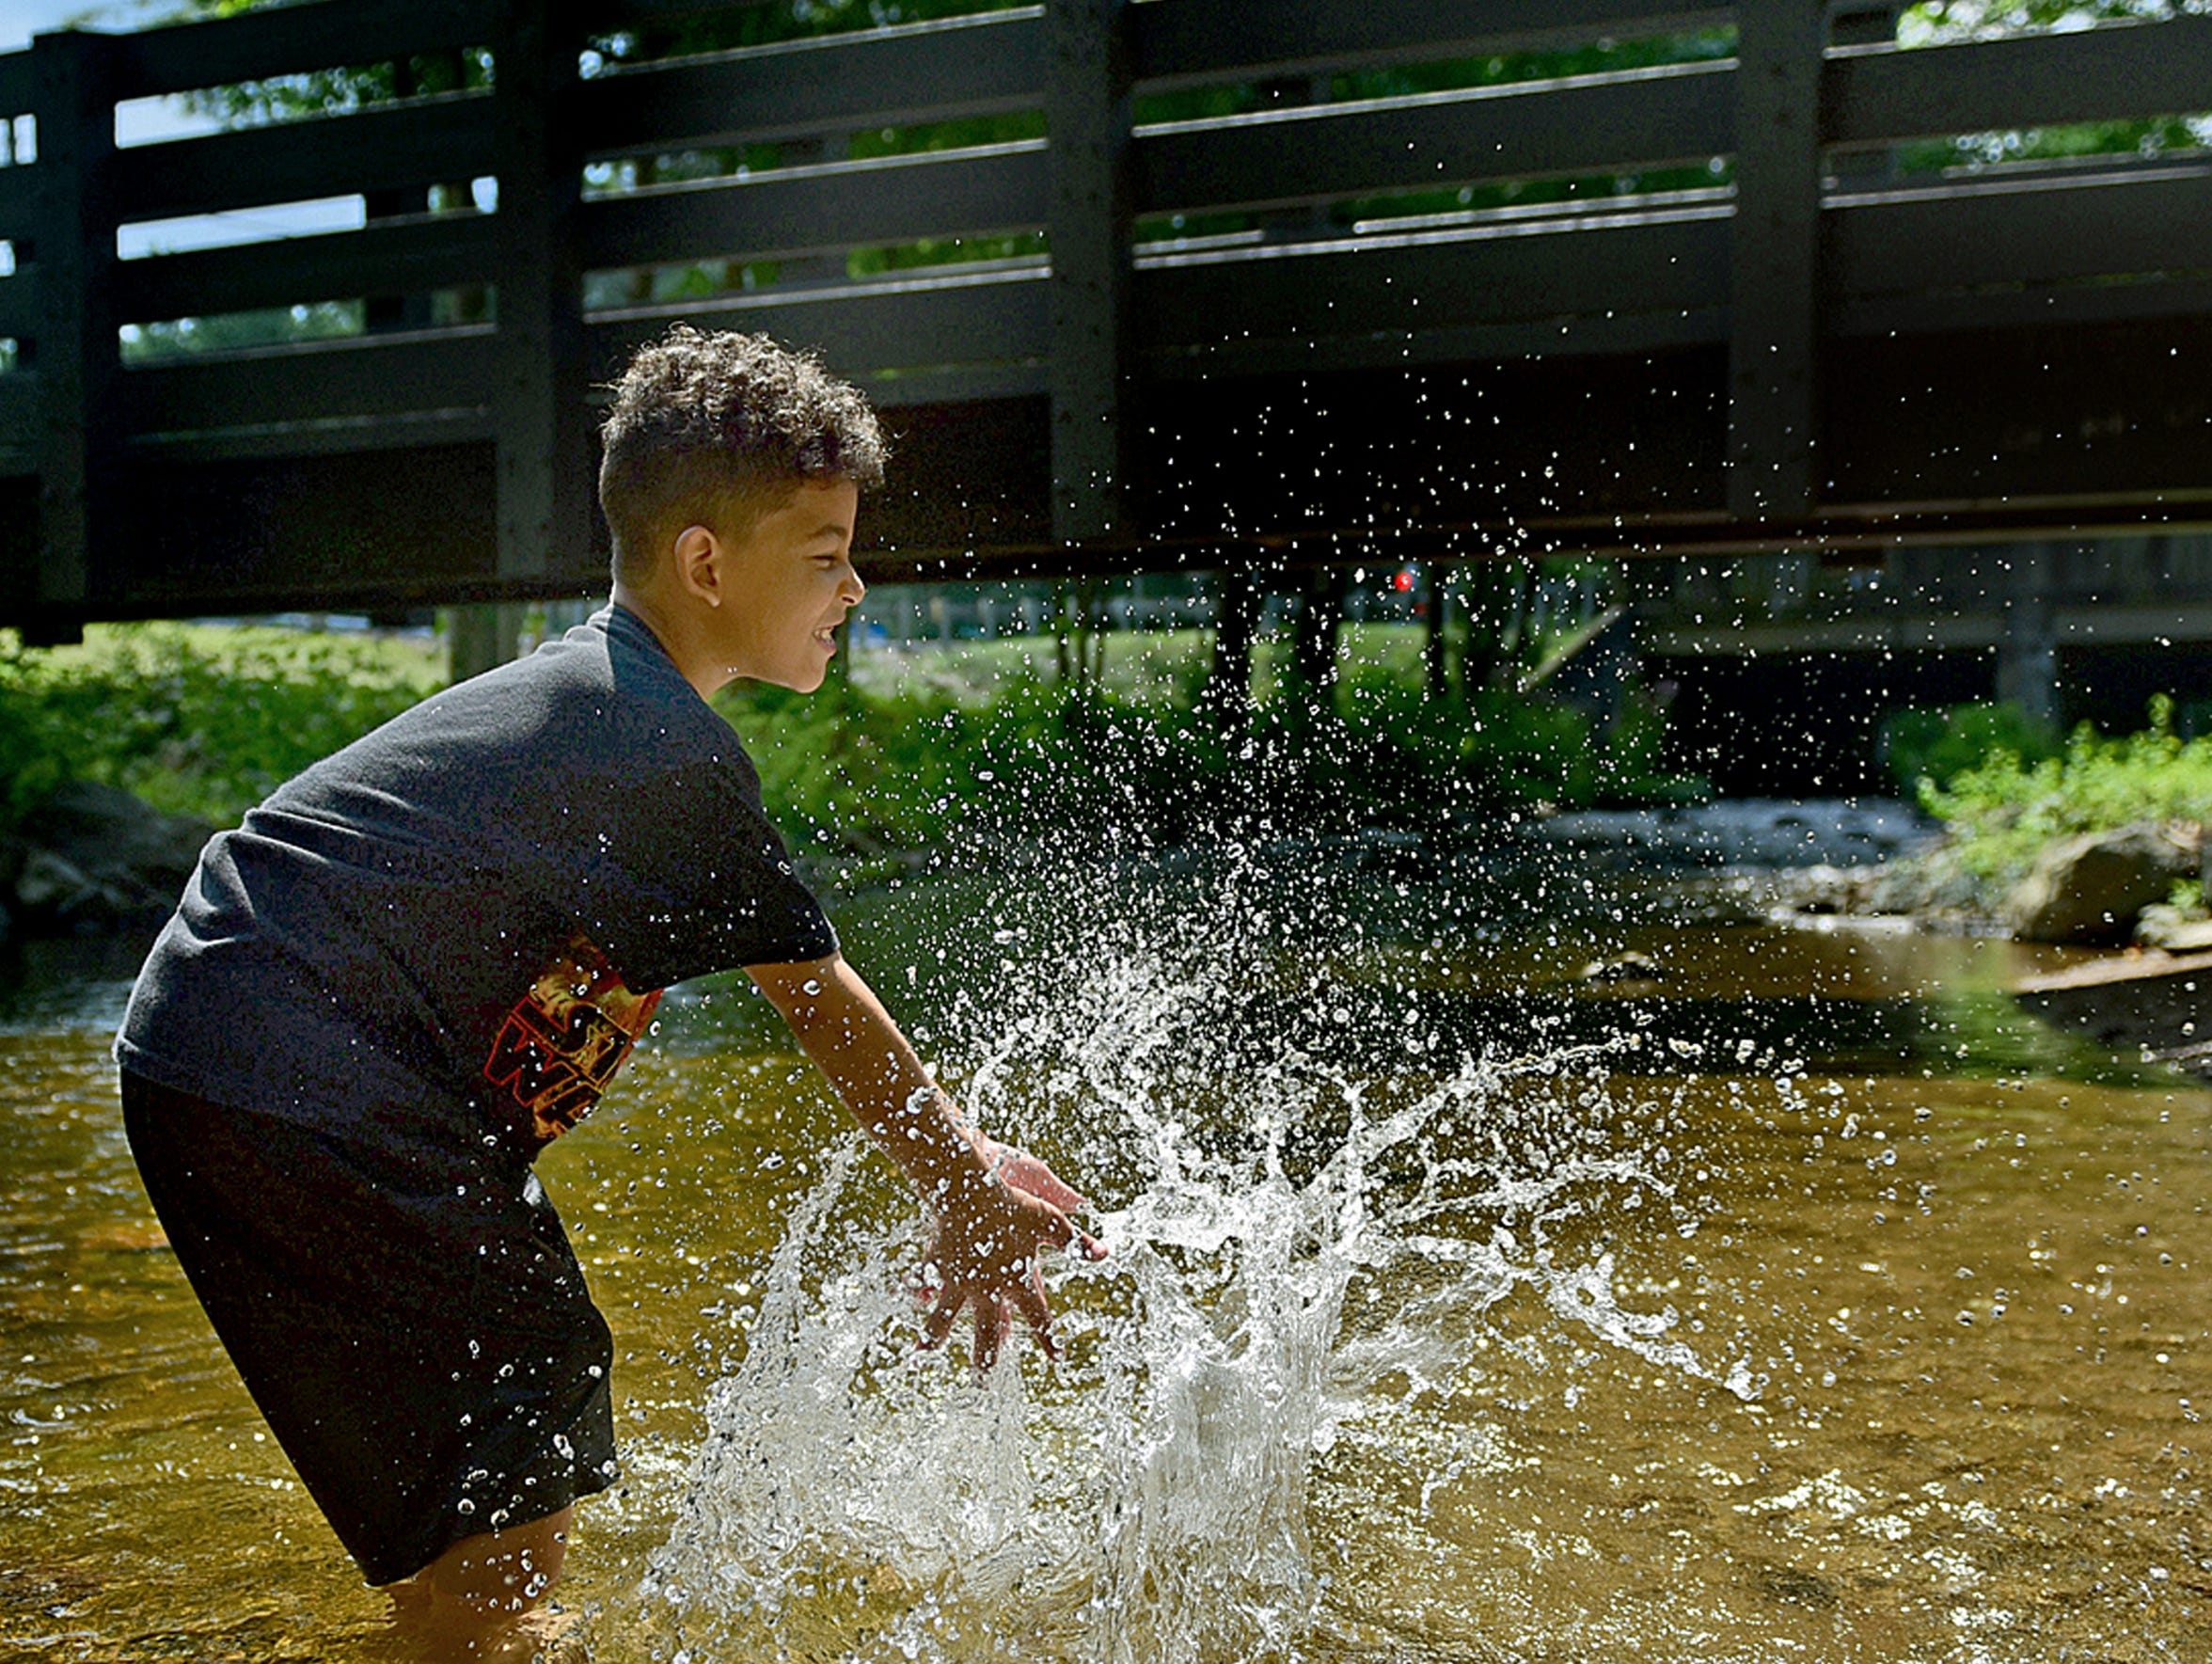 Christopher Wilkerson, 8, splashes water in a creek